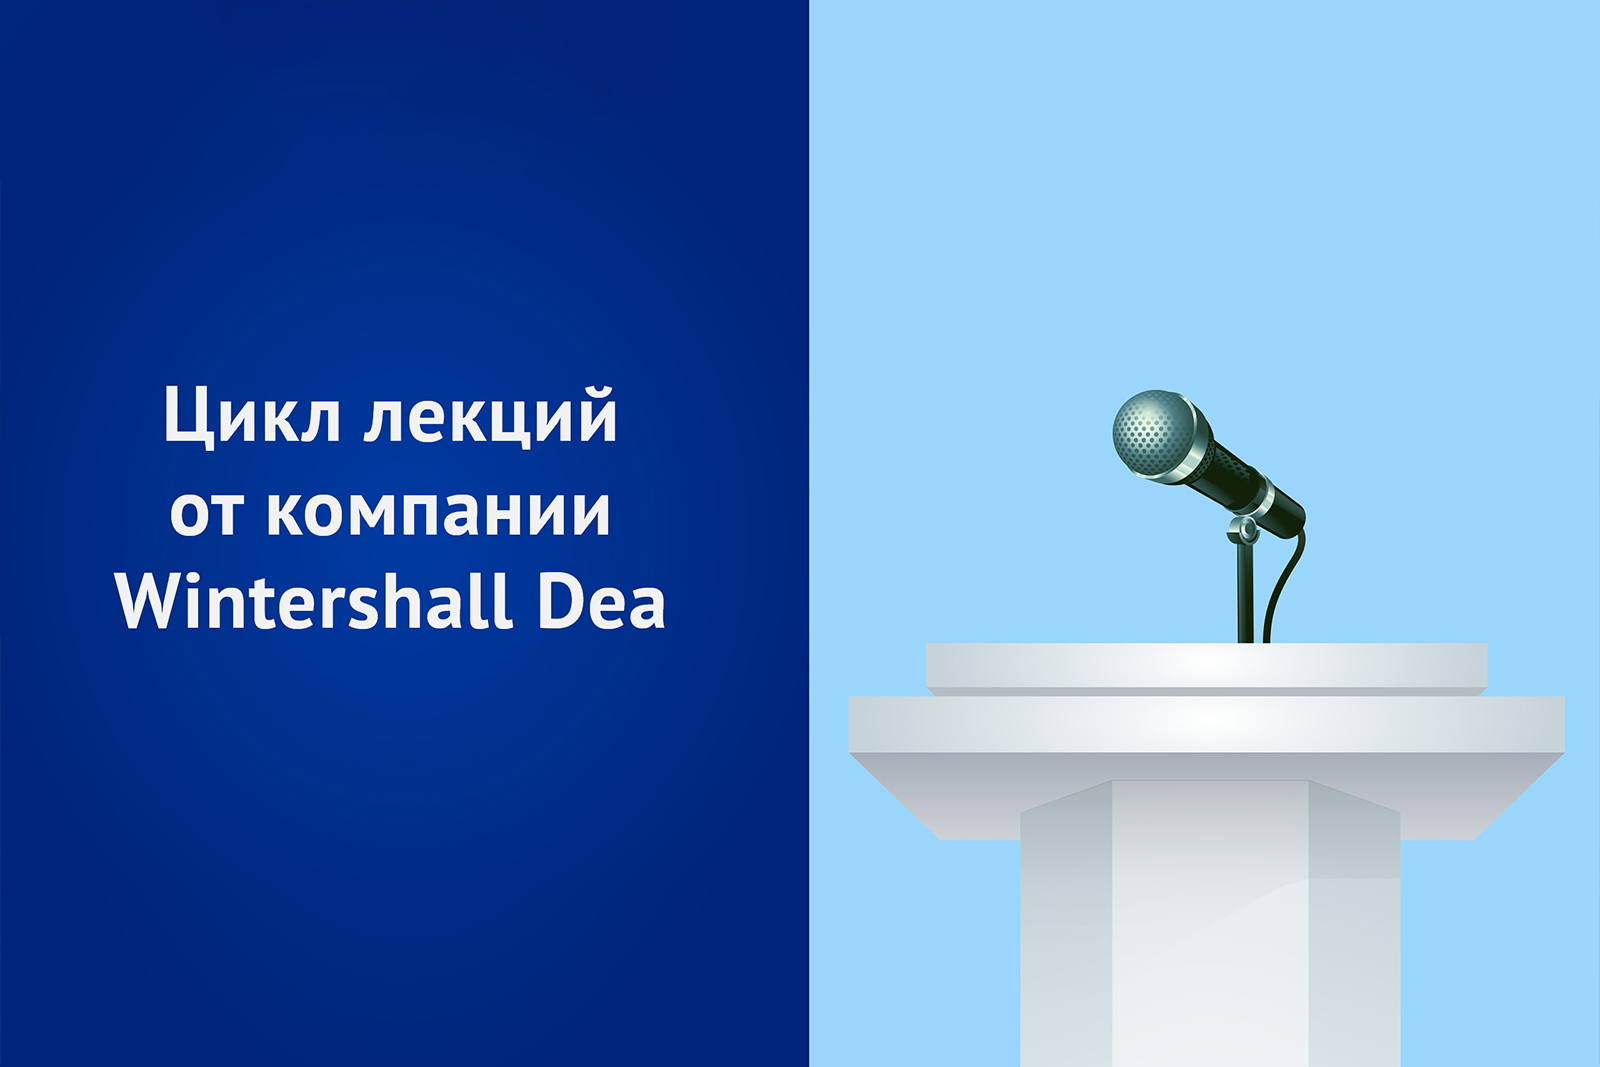 Wintershall Dea will hold a series of lectures on oil and gas production at Polytechnic University